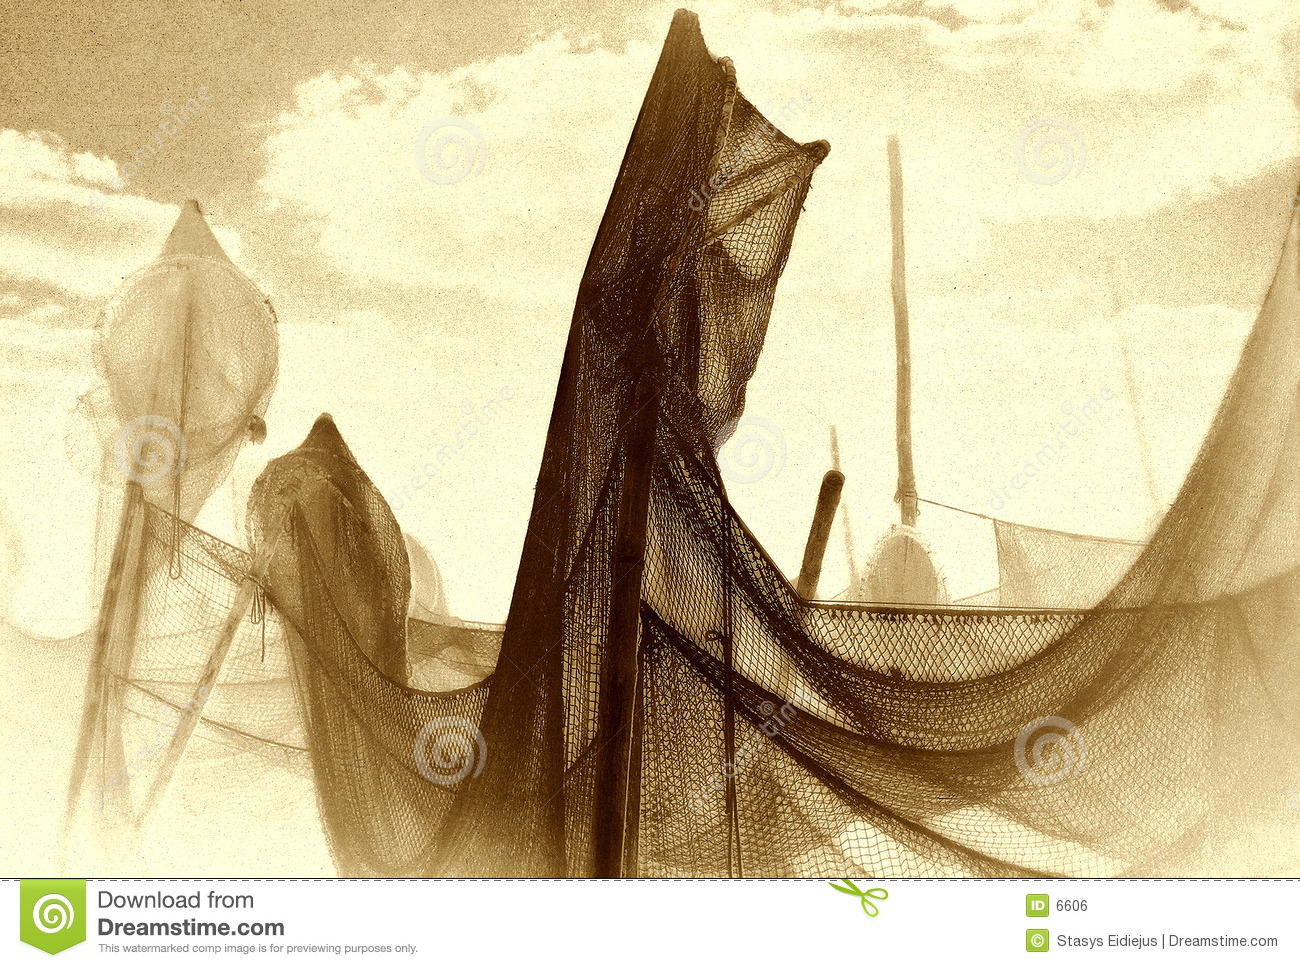 Drying the net